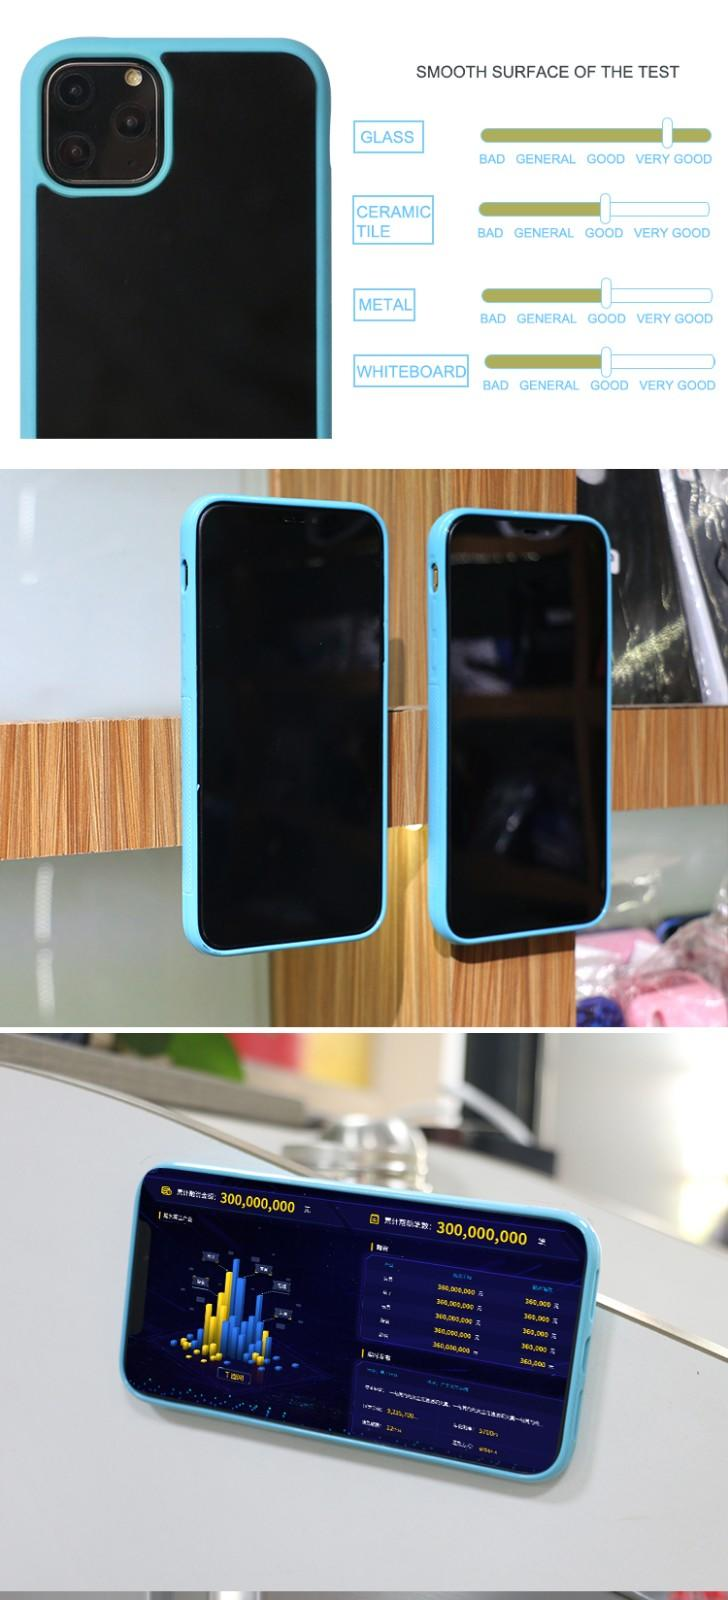 Vserstore soft designer cell phone cases factory price for for iphone-3